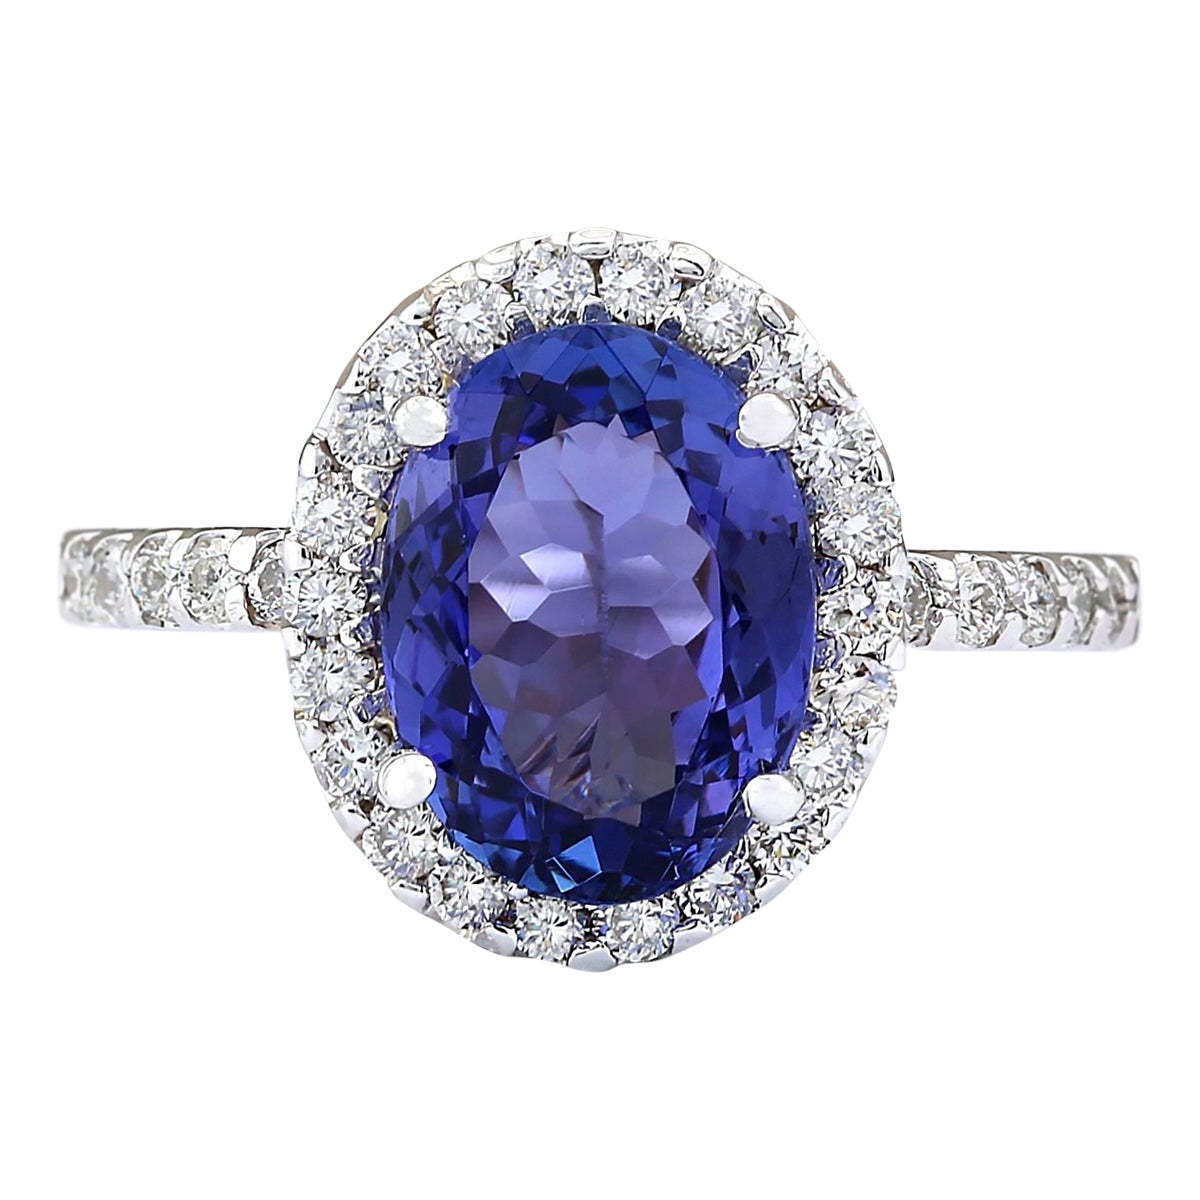 3.63 Carat Natural Tanzanite 14K White Gold Diamond Ring - Fashion Strada